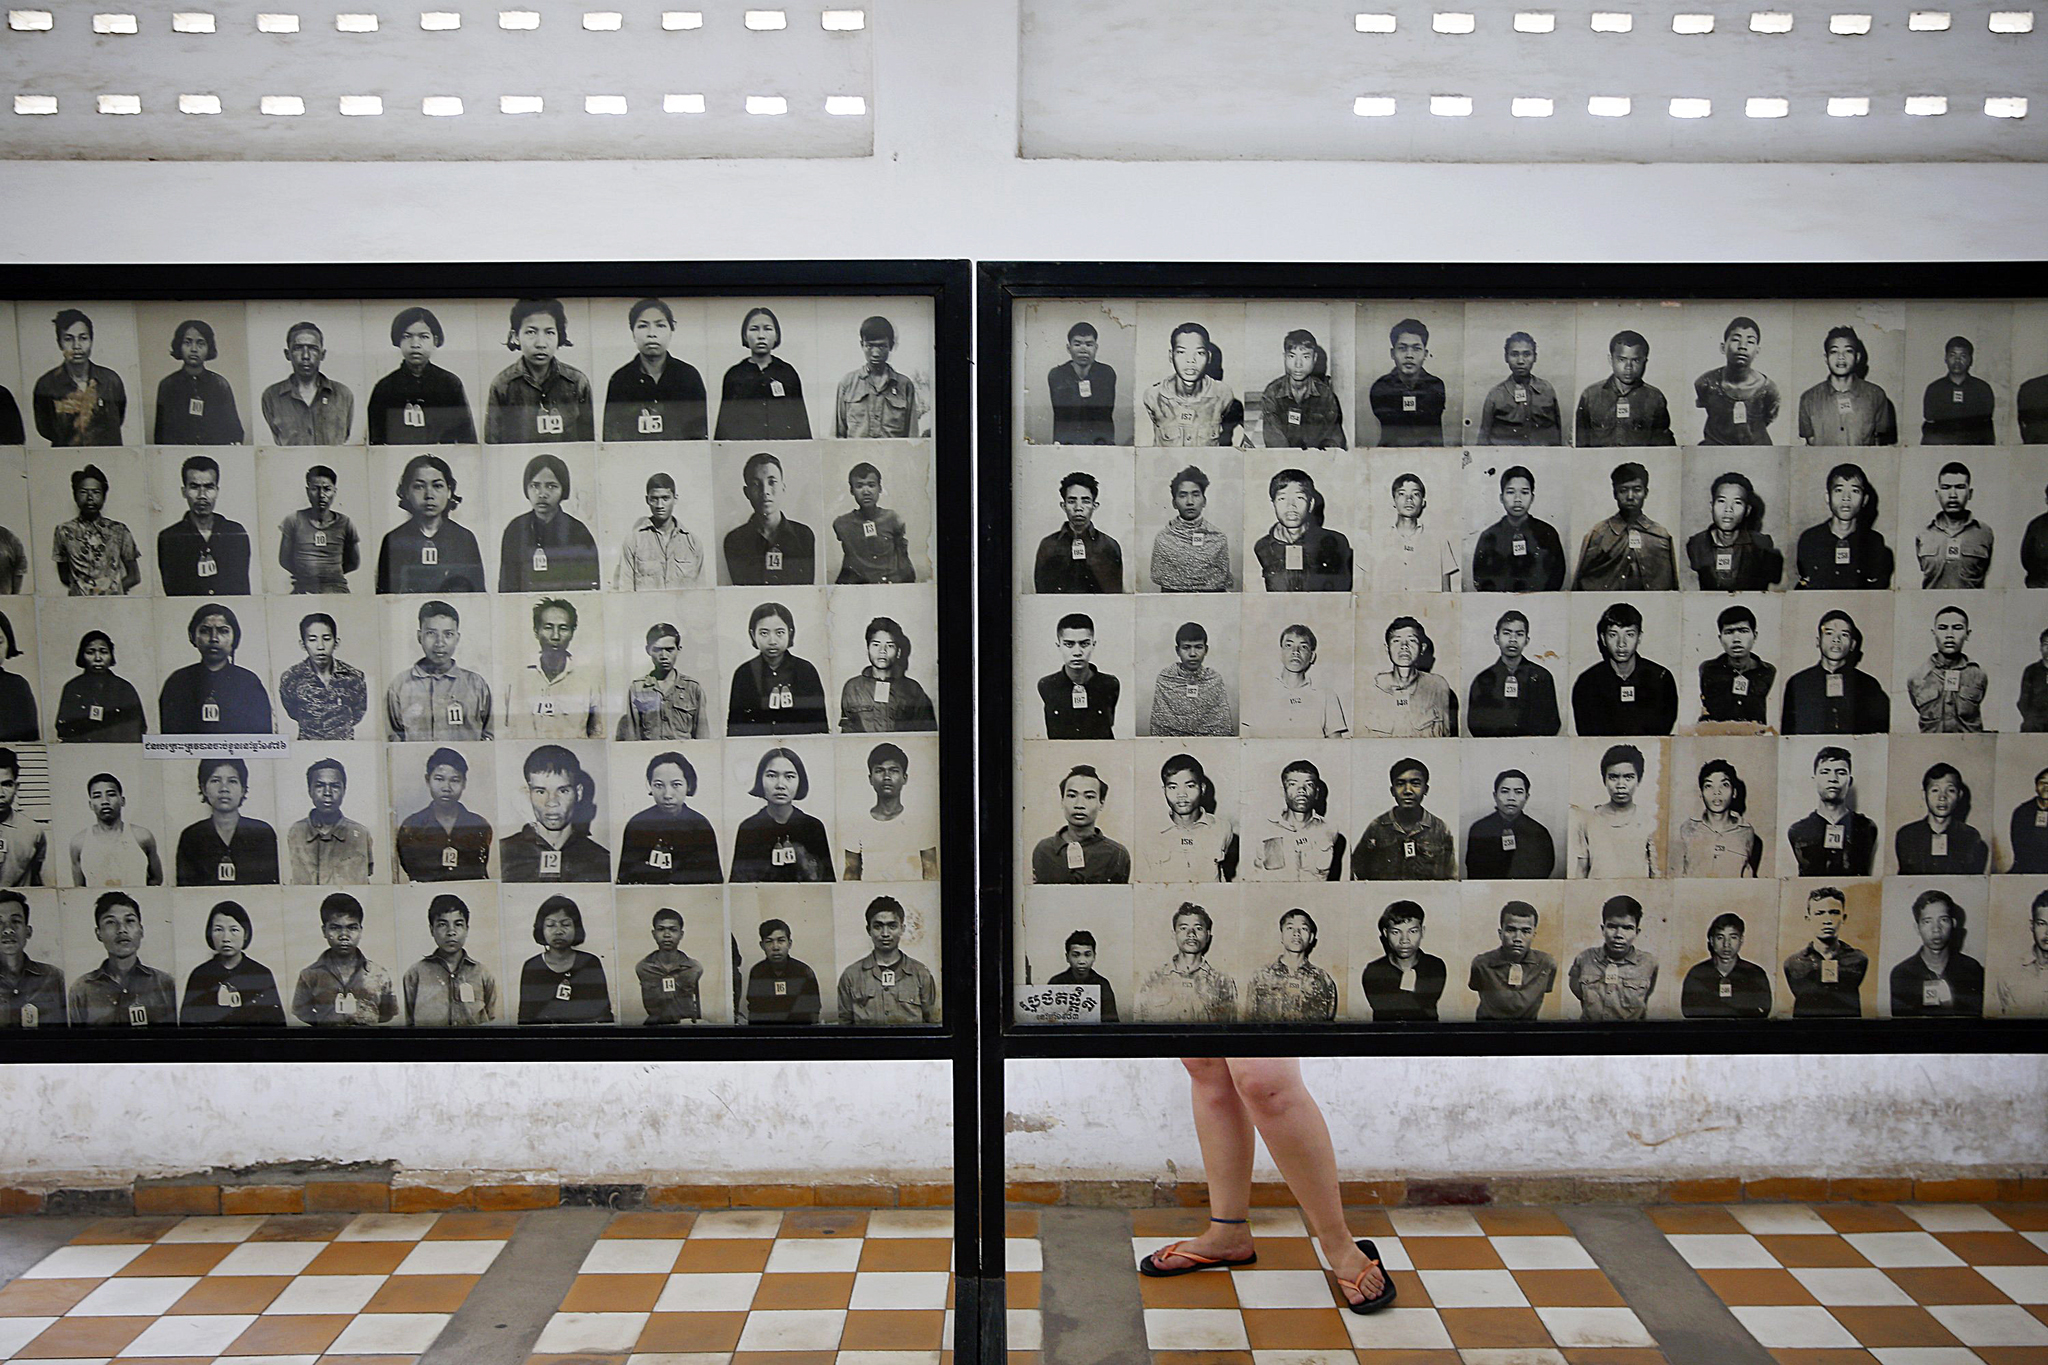 A visitor looks at pictures of victims of Khmer Rouge regime at the former notorious Tuol Sleng prison that is now the Genocide Museum, in Phnom Penh...A visitor looks at pictures of victims of Khmer Rouge regime at the former notorious Tuol Sleng prison that is now the Genocide Museum, in Phnom Penh August 5, 2014. Cambodia's young population is very aware of its grim history, with almost every family suffering losses. Most Cambodians still want justice and to see the U.N.-backed court find the recalcitrant Nuon Chea, Pol Pot's right-hand man, and ex-President Khieu Samphan, guilty of crimes against humanity, but the court has been mired in disputes, resignations, funding shortages and accusations of political interference and has to date delivered just one verdict. The court will deliver verdicts for Noun Chea and Khieu Samphan on August 7, 2014. Picture taken August 5, 2014. REUTERS/Damir Sagolj(CAMBODIA - Tags: POLITICS CIVIL UNREST CRIME LAW)